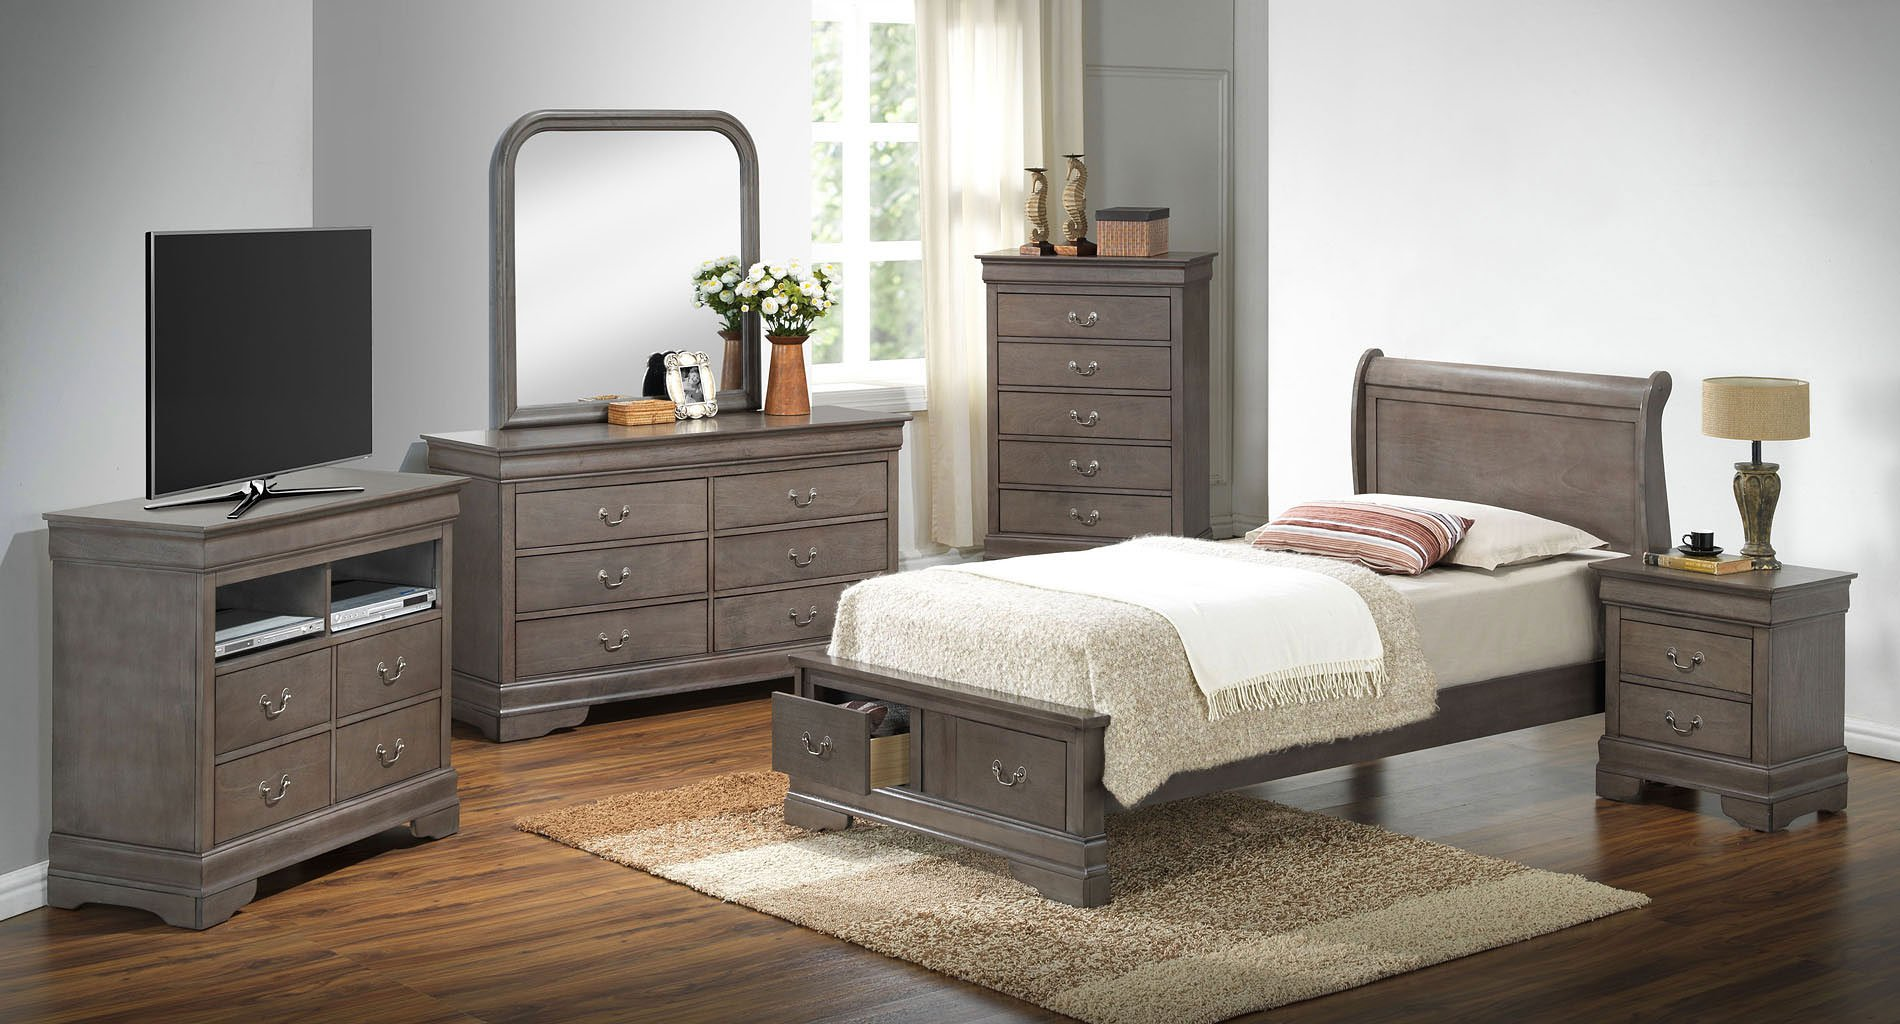 G3105 youth sleigh storage bedroom set glory furniture furniture cart for Youth storage bedroom furniture